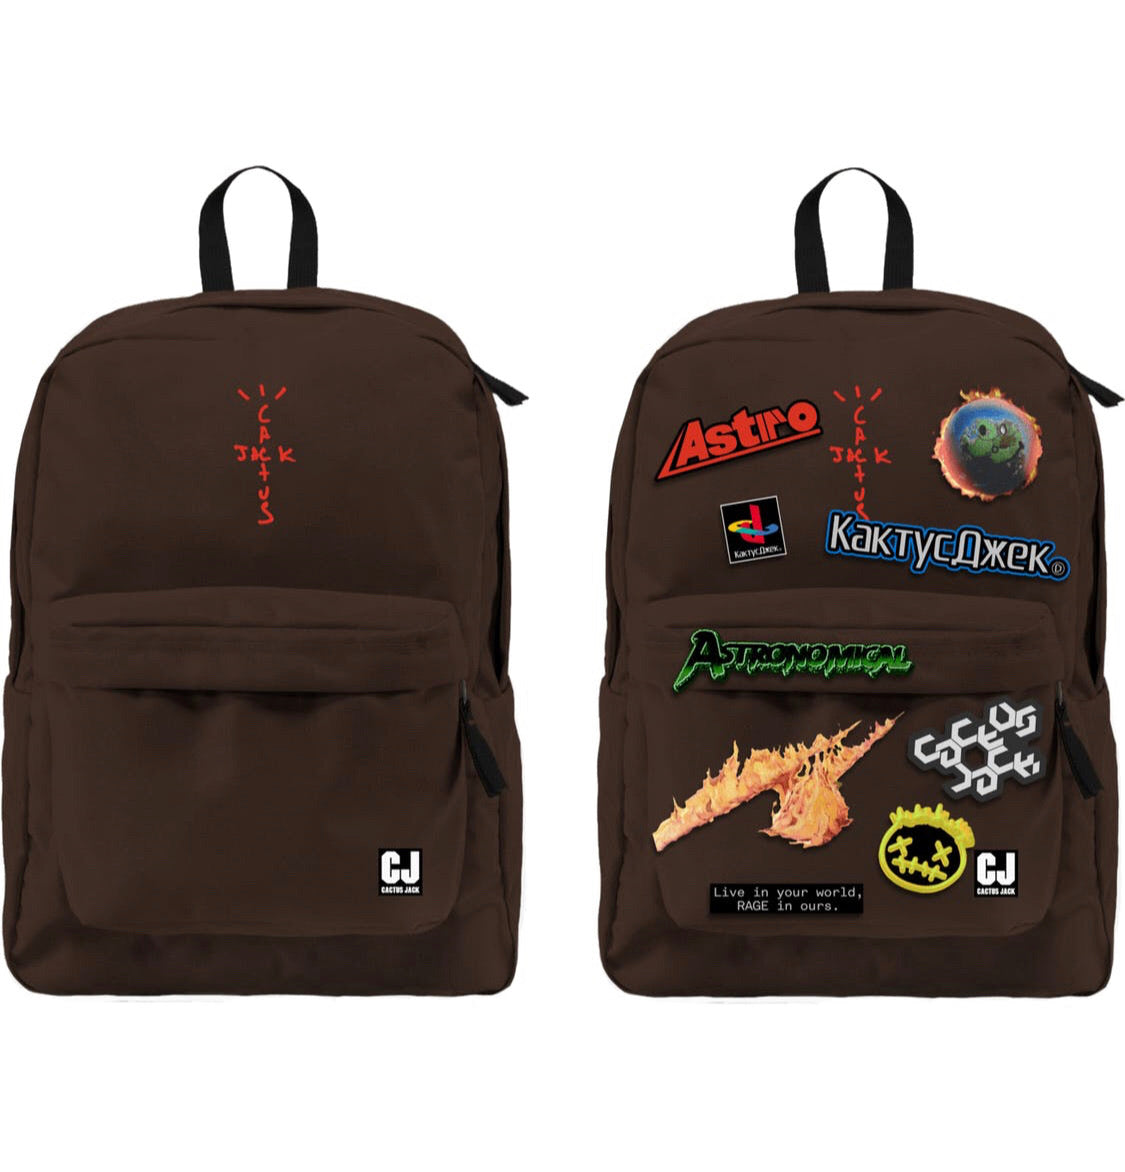 Cactus Jack x Fortnite Backpack w/ Patches